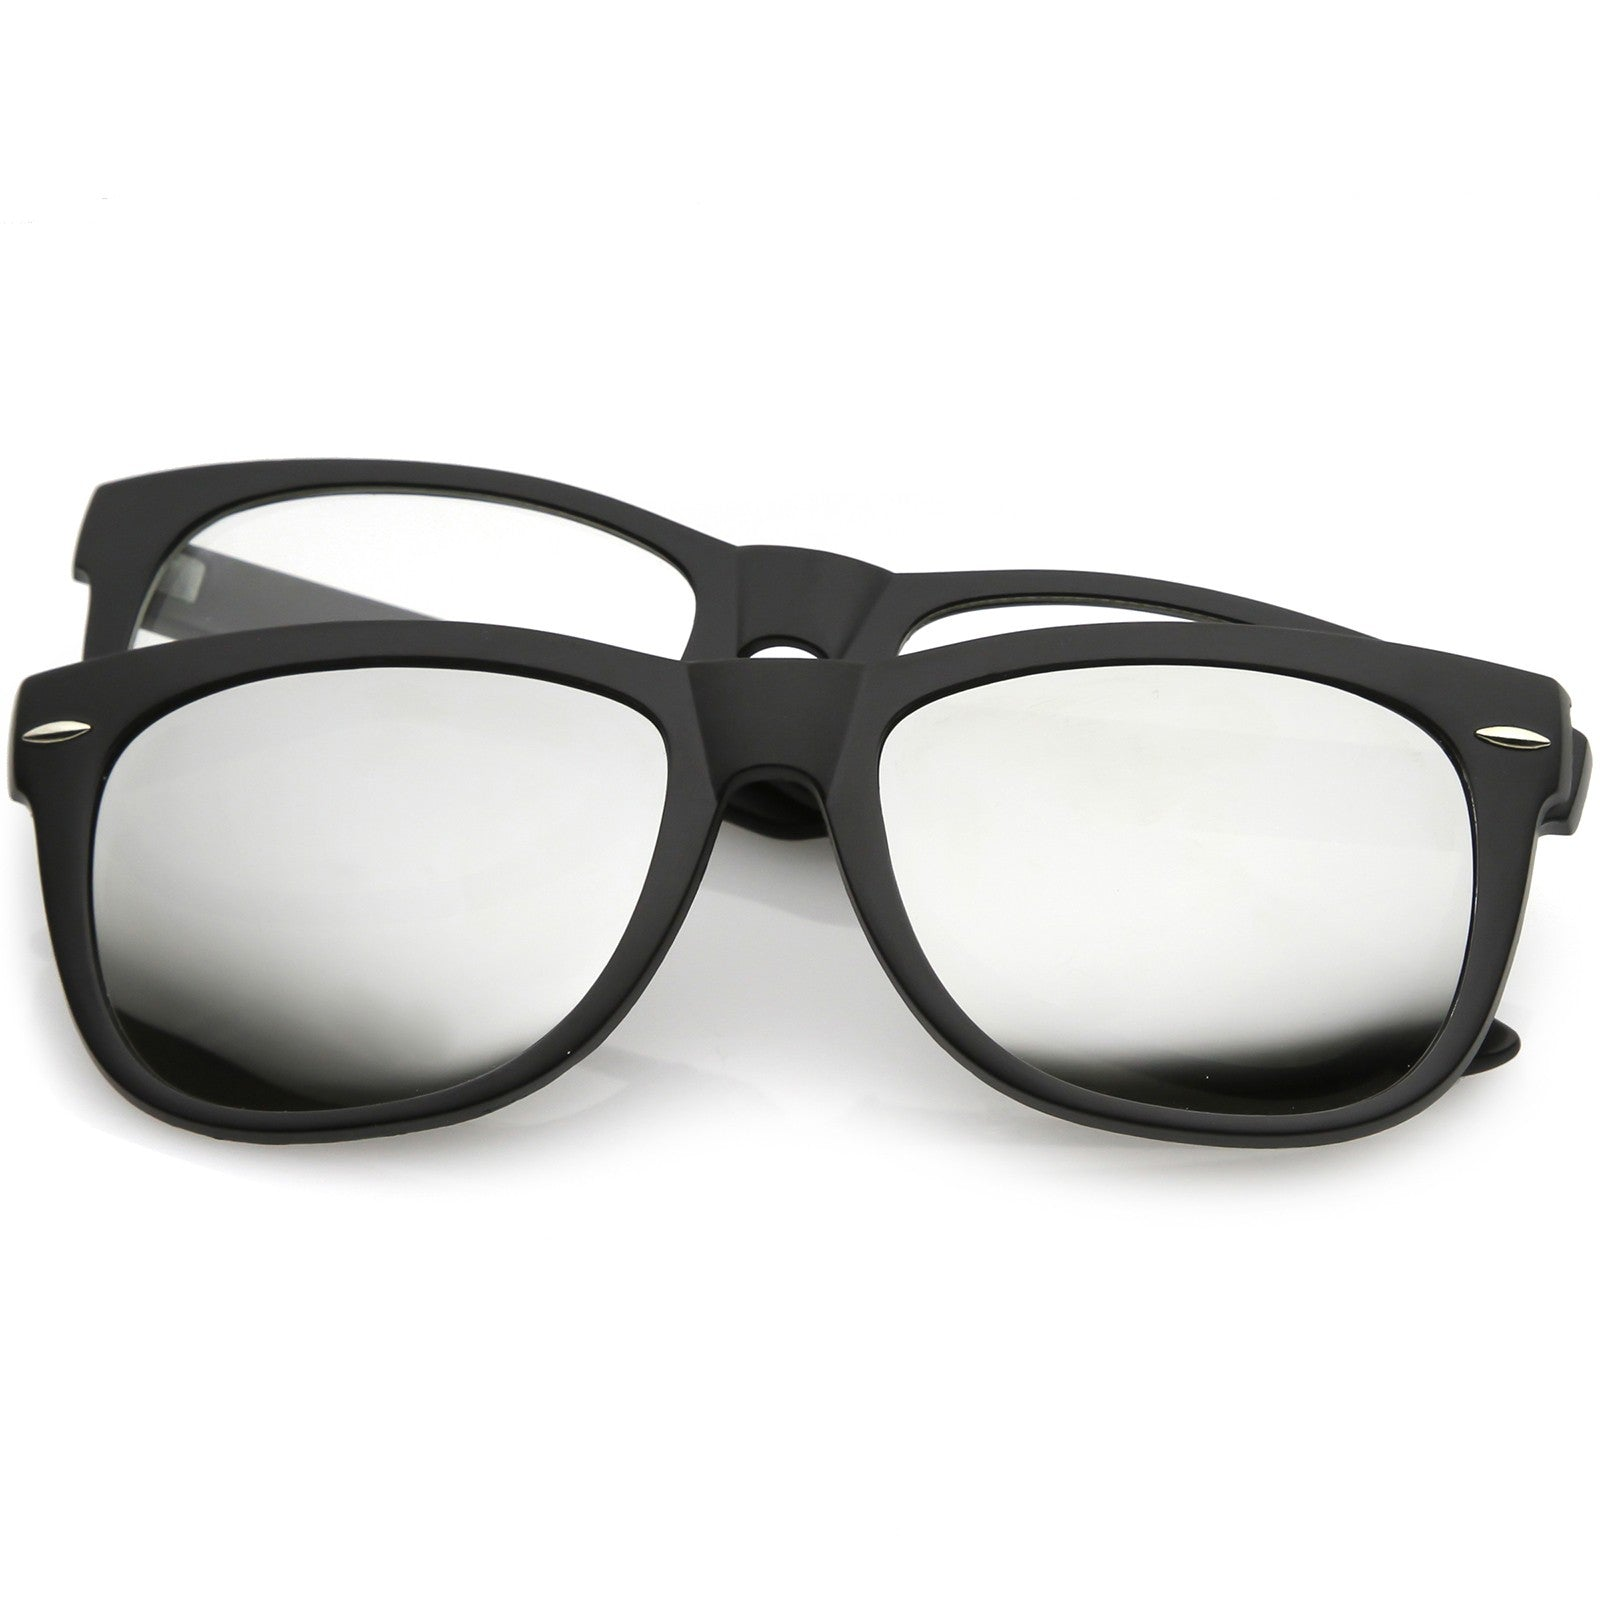 Premium-Magnetic-Clip-On-Horn-Rimmed-Sunglasses-Mirrored-And-Clear-Square-Lens-5 thumbnail 7